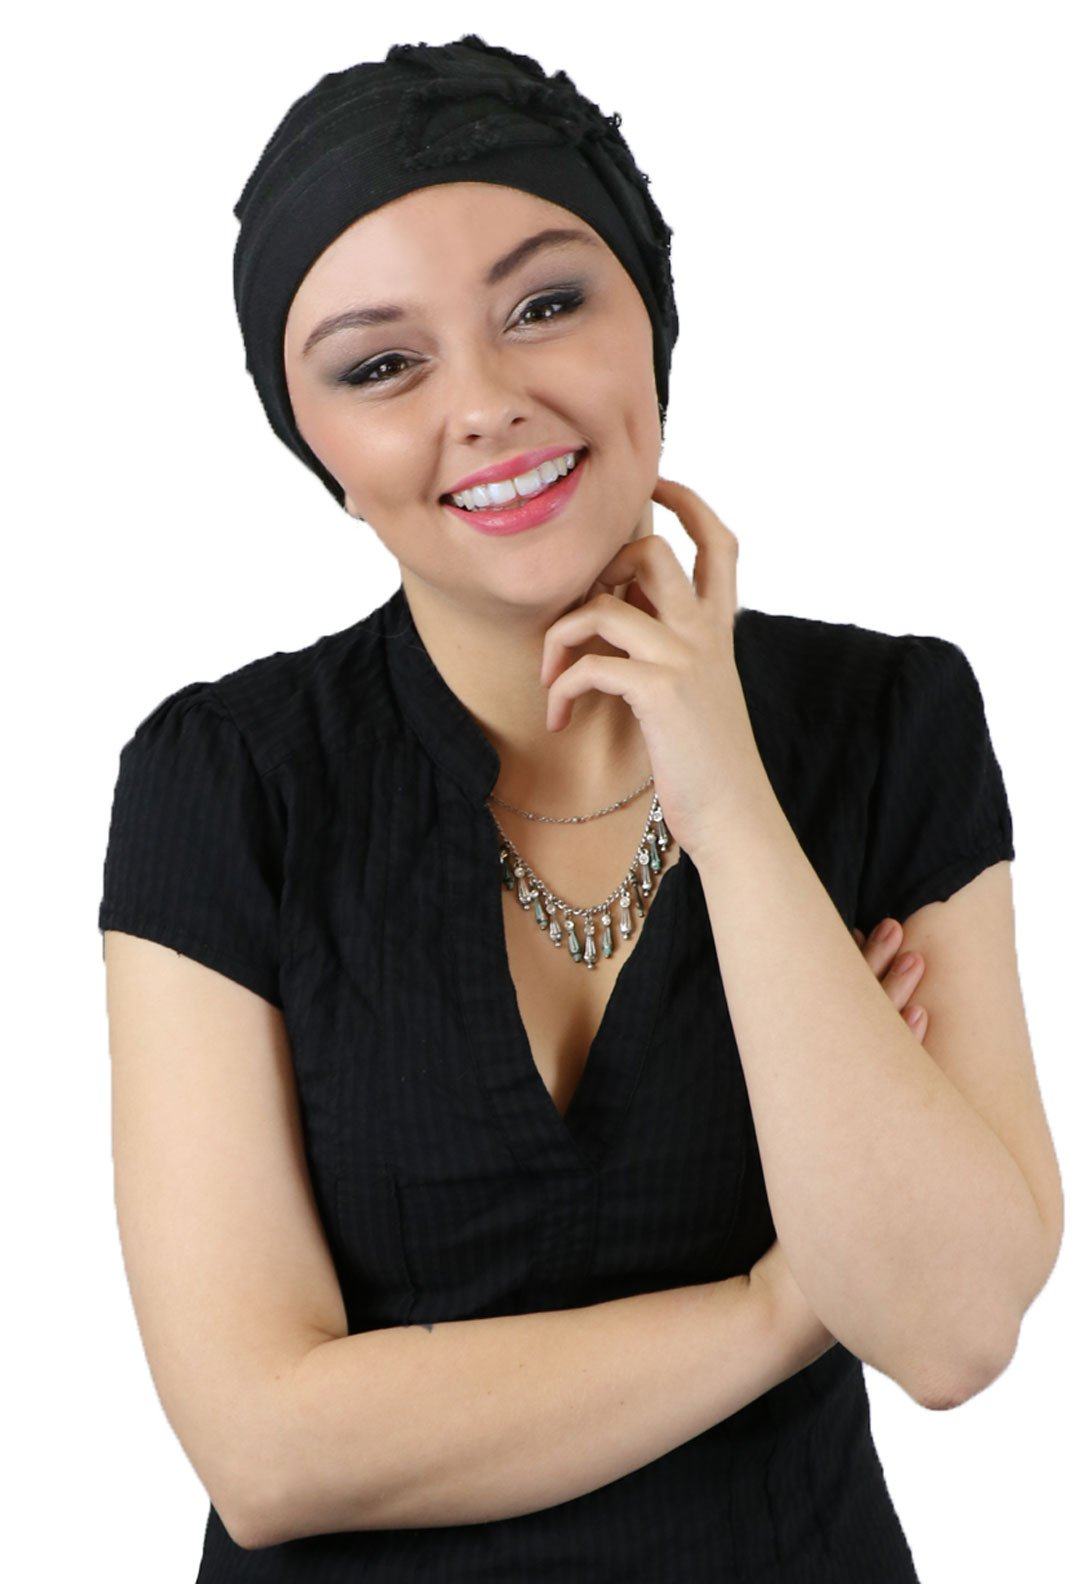 Hats For Cancer Patients Women Chemo Headwear Head Coverings Butterfly Beanie Parkhurst (BLACK) by Hats Scarves & More (Image #3)